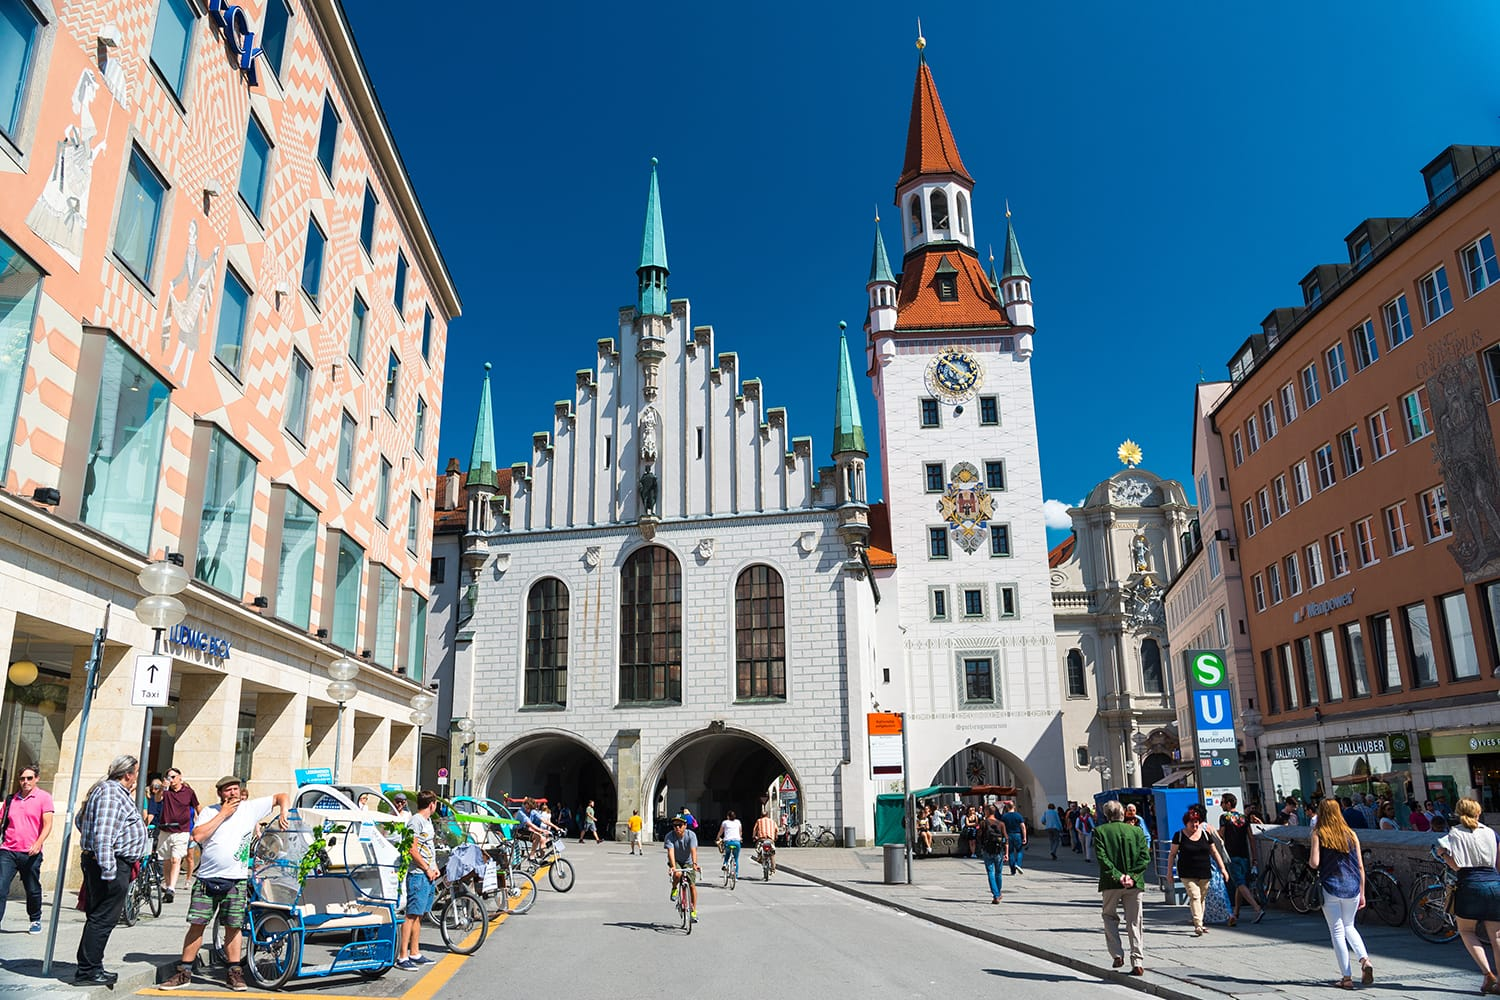 The Old Town Hall located on the Central square of Munich, Germany